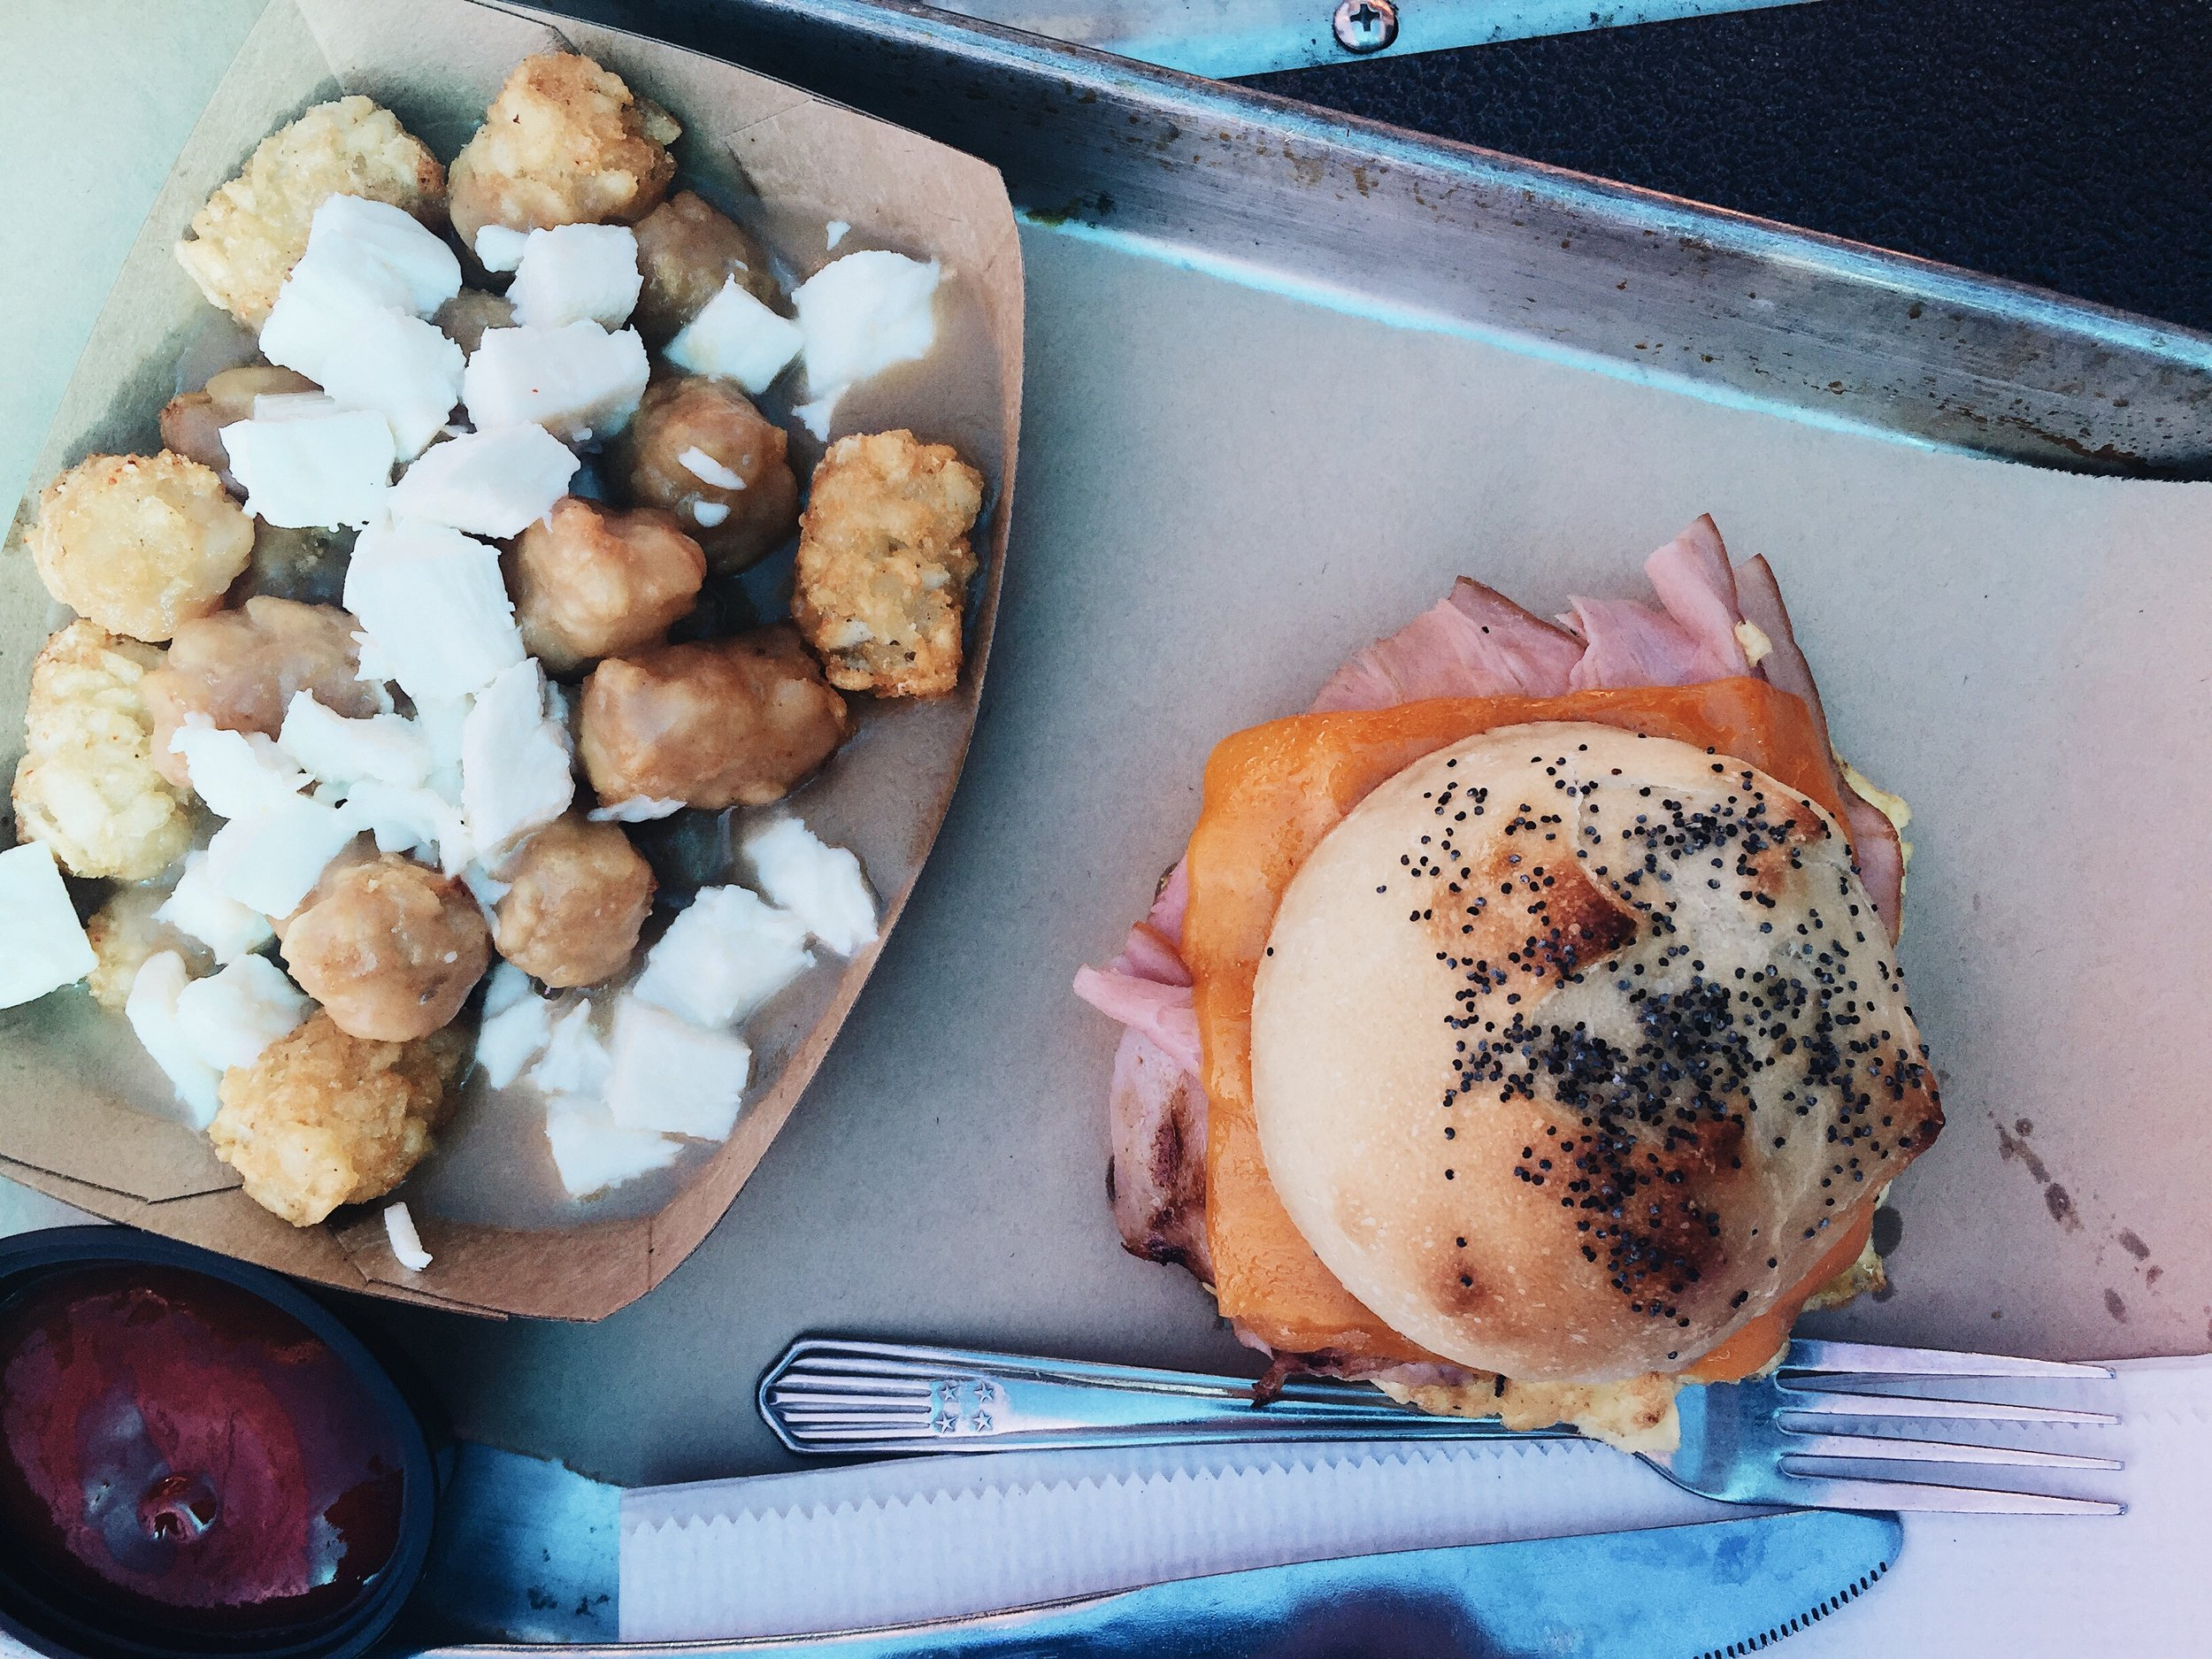 Deli Breakfast Sandwich with some Putin Tots on the side. -